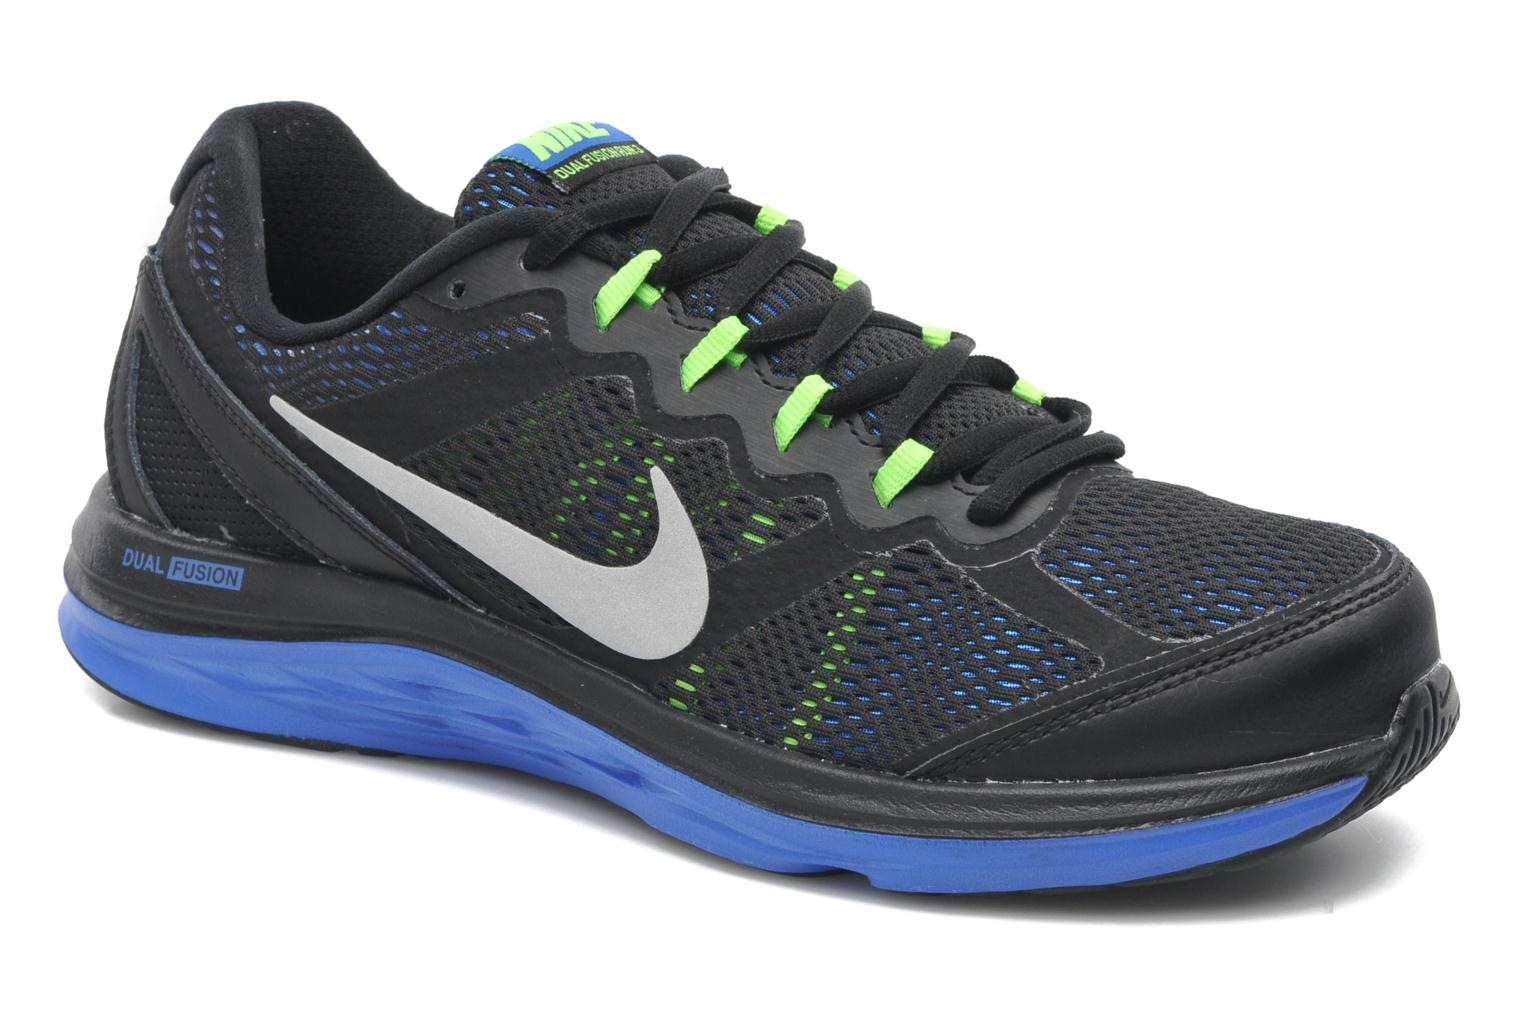 nike nike dual fusion run 3 sport shoes in black at 199131. Black Bedroom Furniture Sets. Home Design Ideas